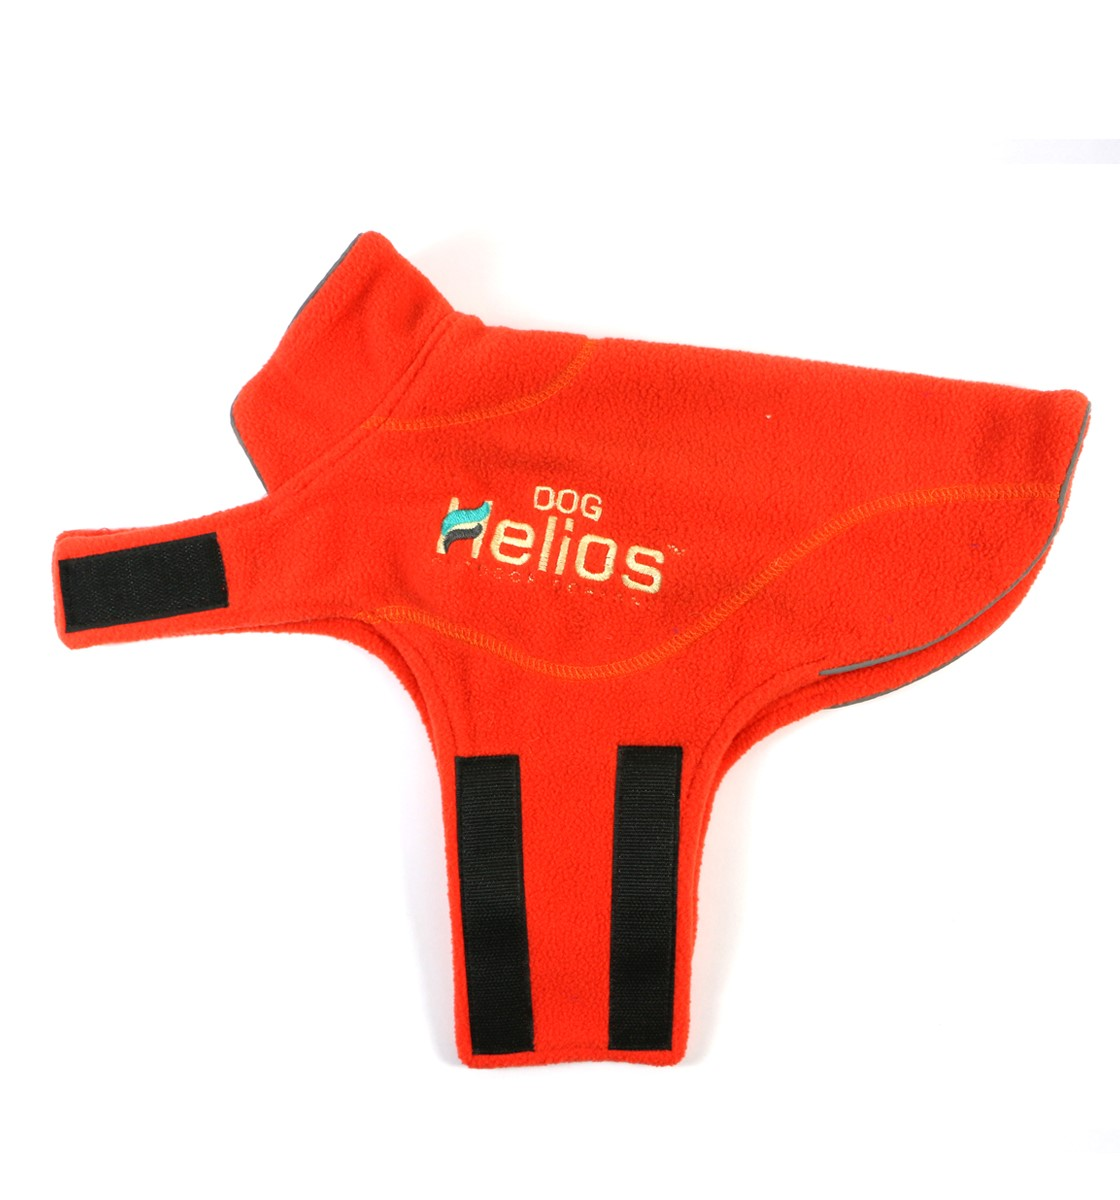 Helios  Polar Fleece Jacket - Large